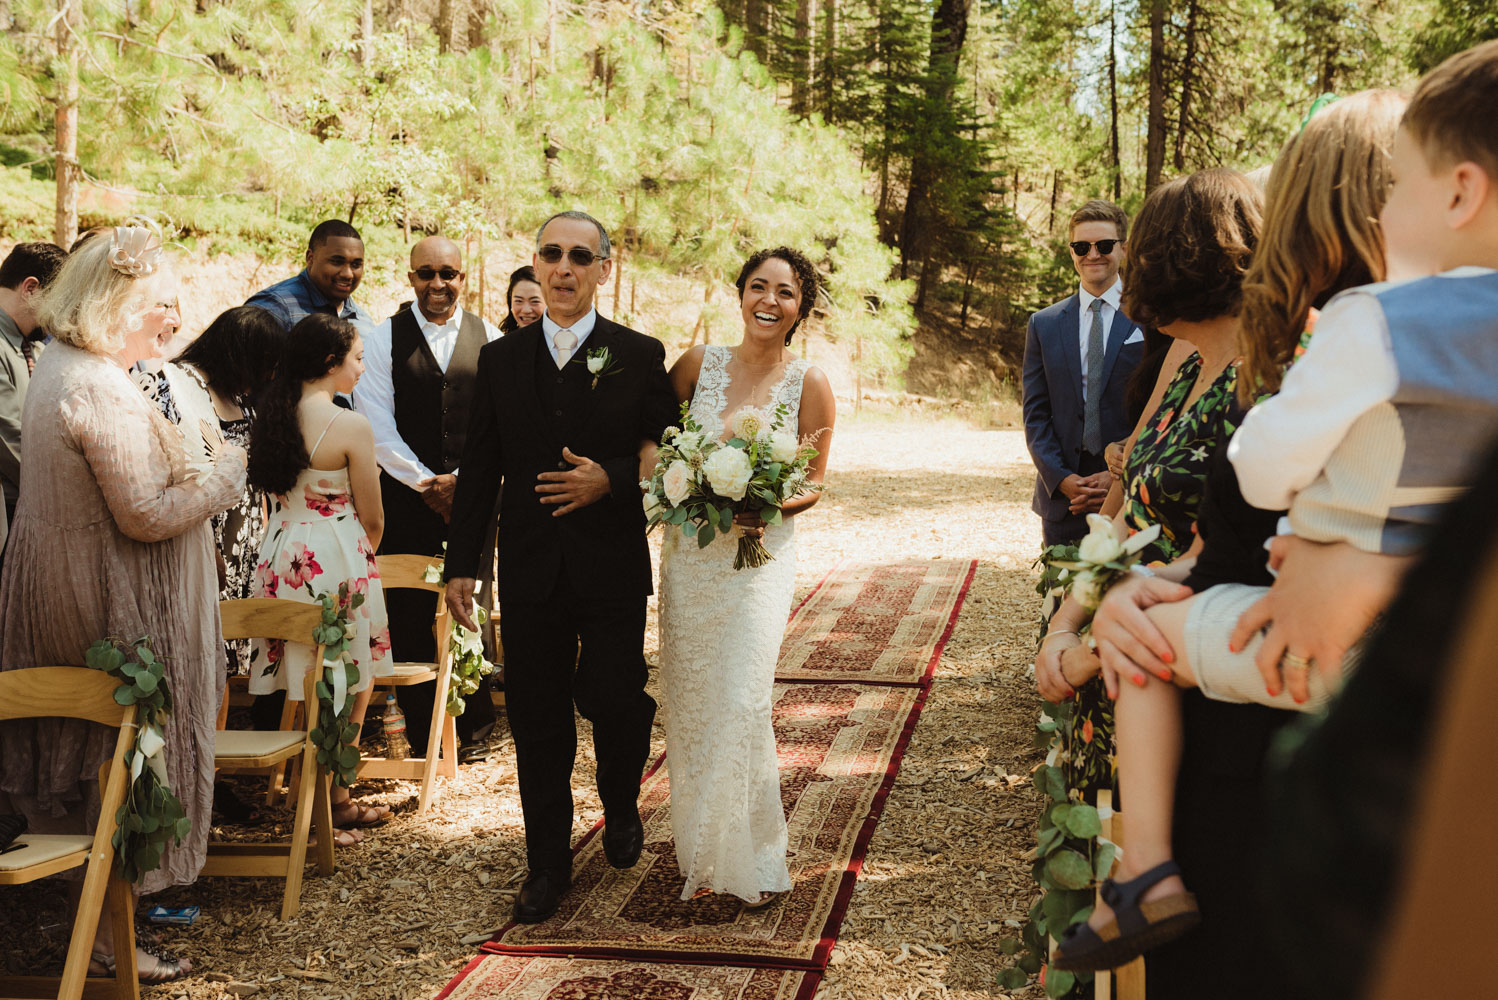 Rush Creek Lodge Wedding, photo of bride walking down the aisle with her dad